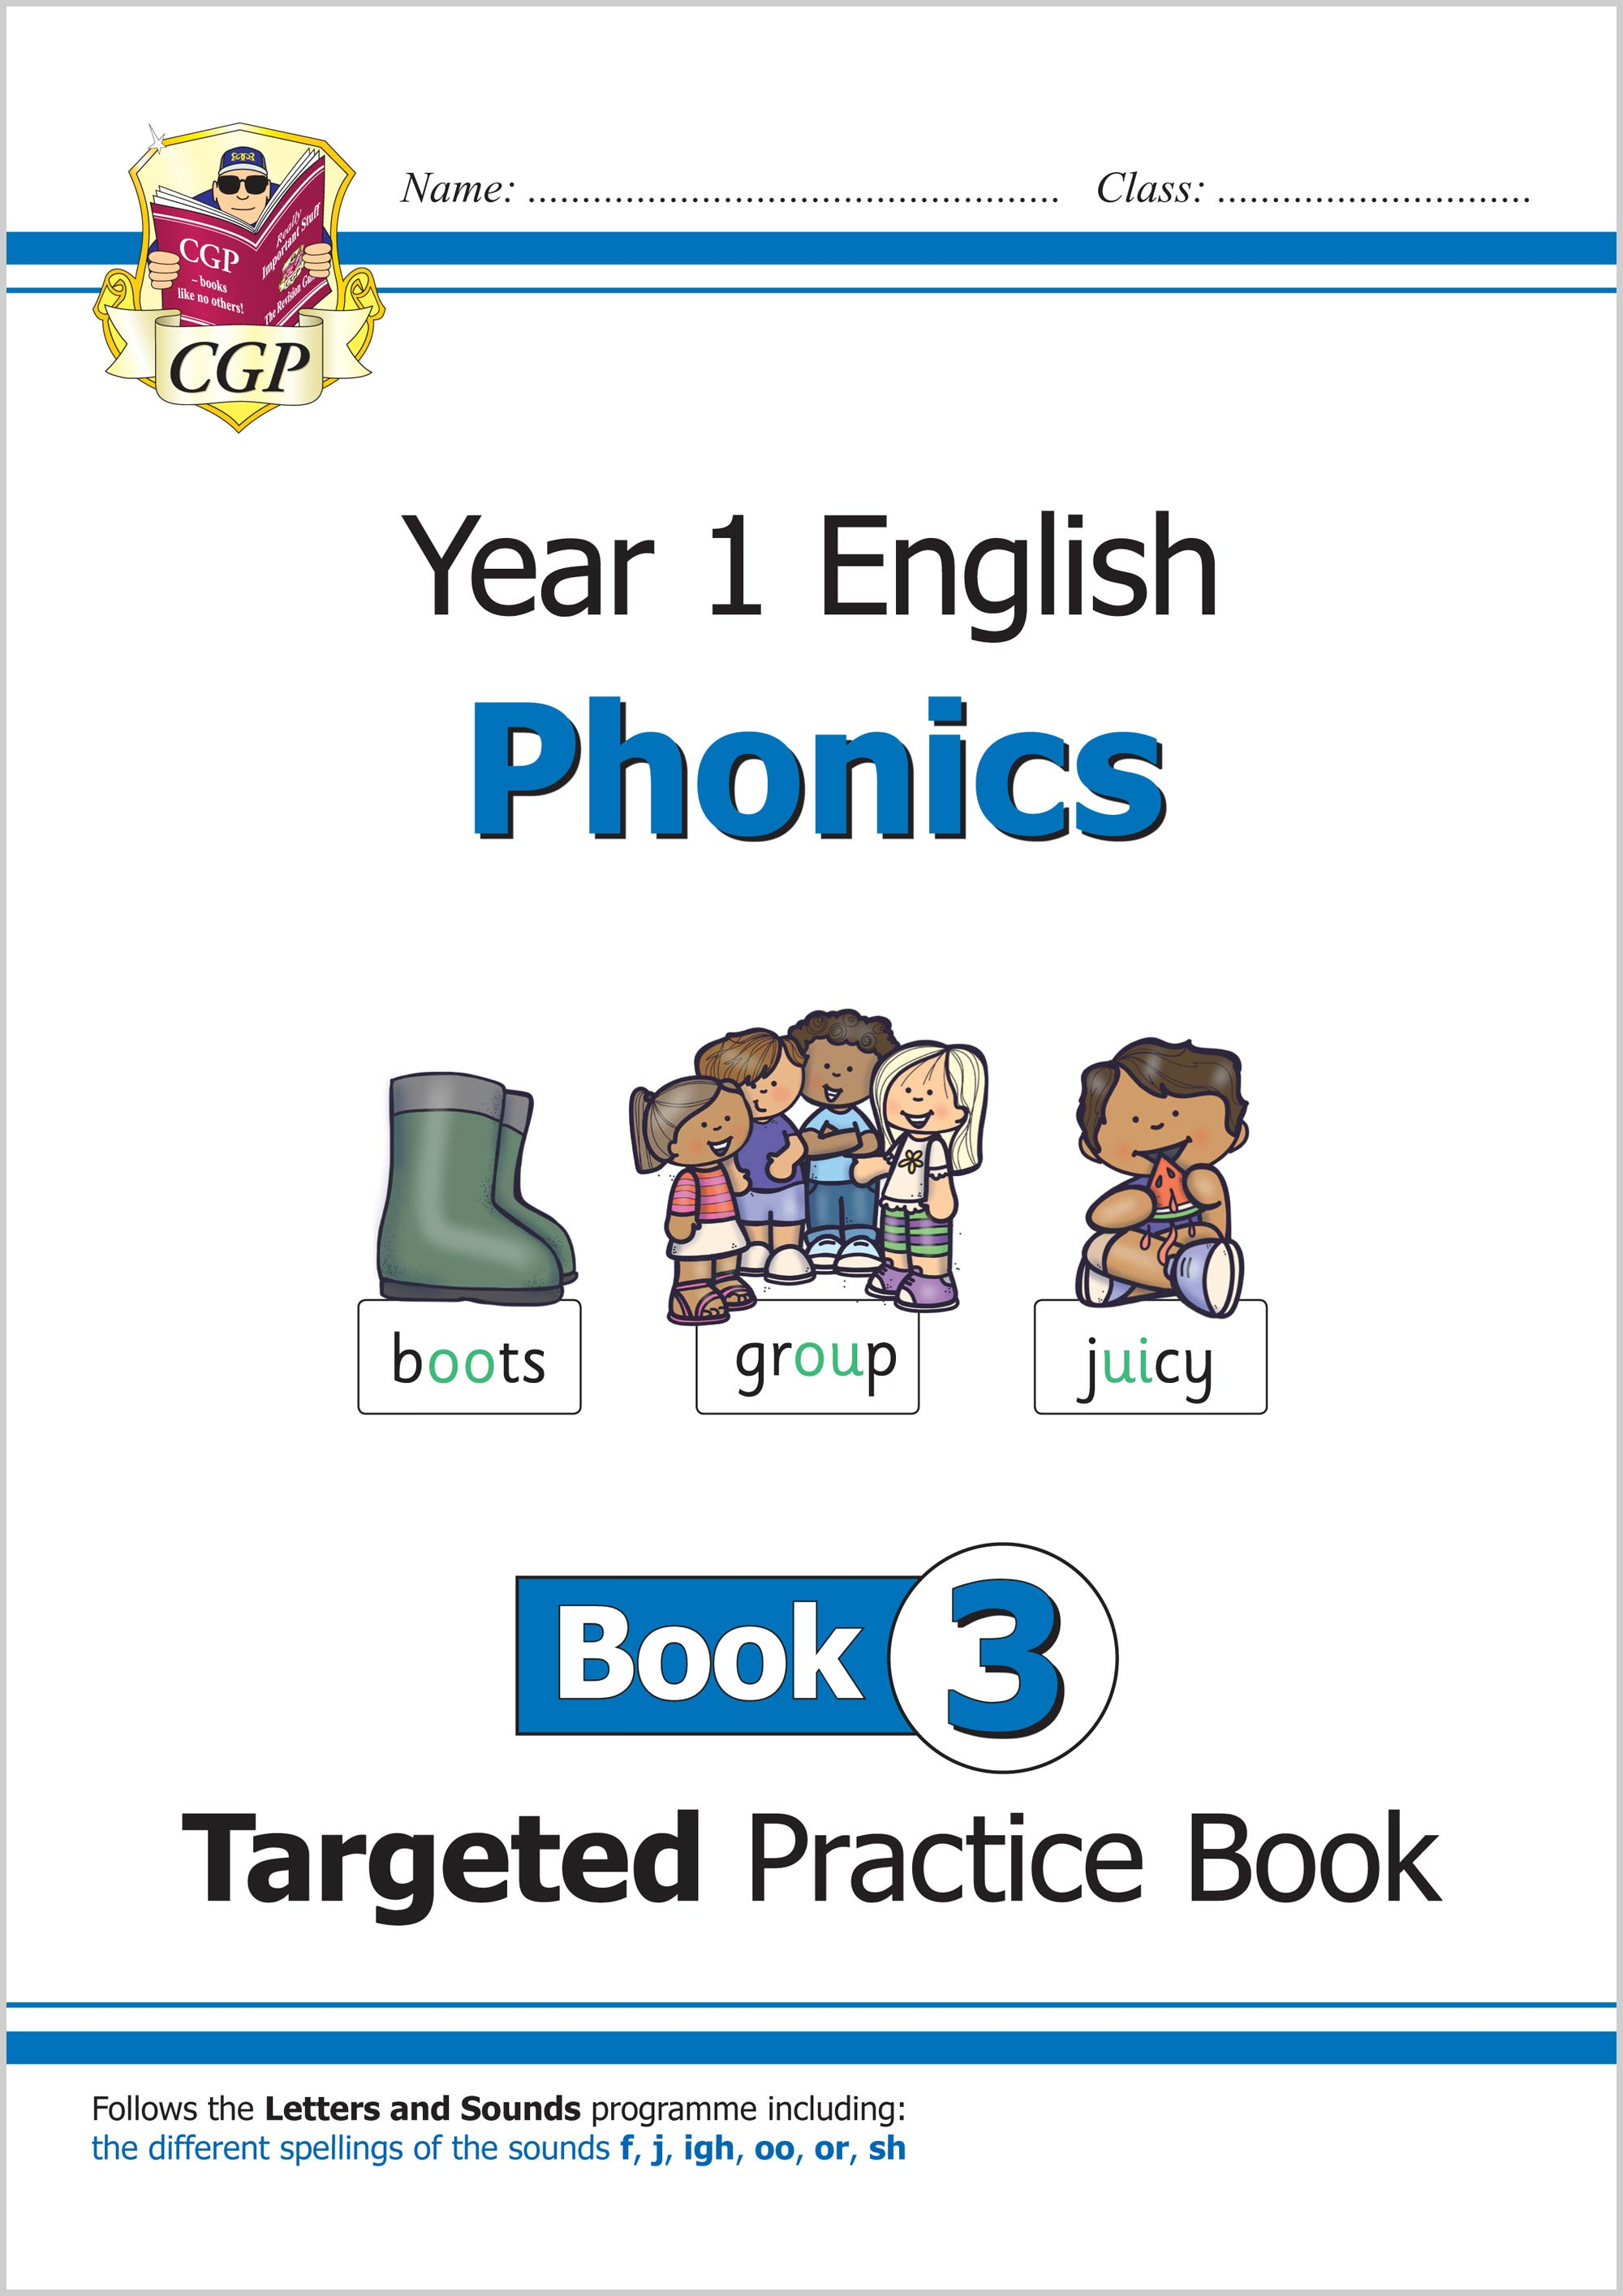 E1OW311 - KS1 English Targeted Practice Book: Phonics - Year 1 Book 3